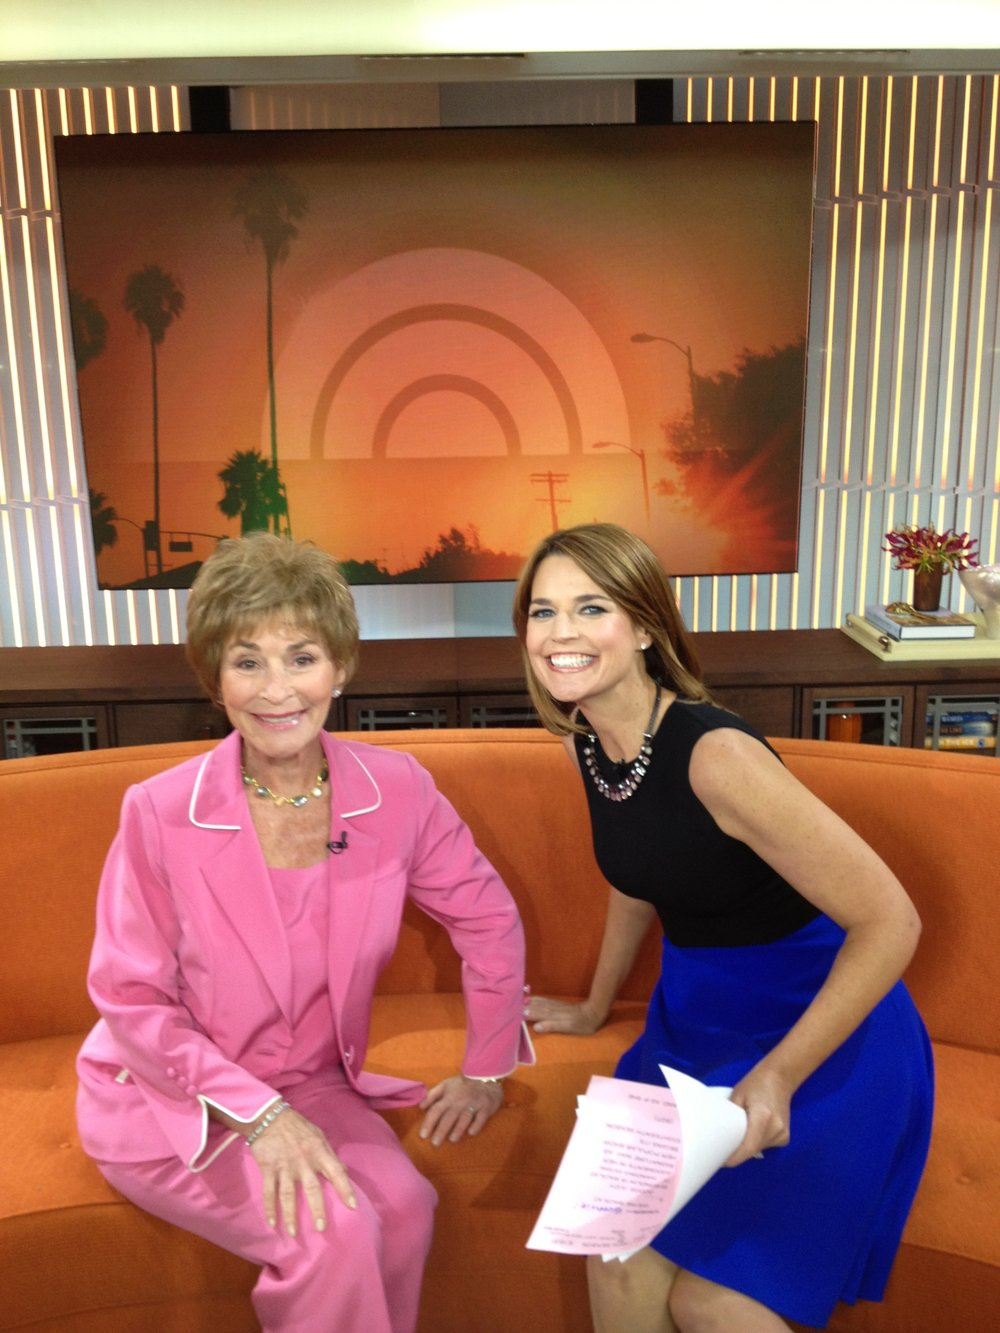 Judge Judy with savannah Guthrie